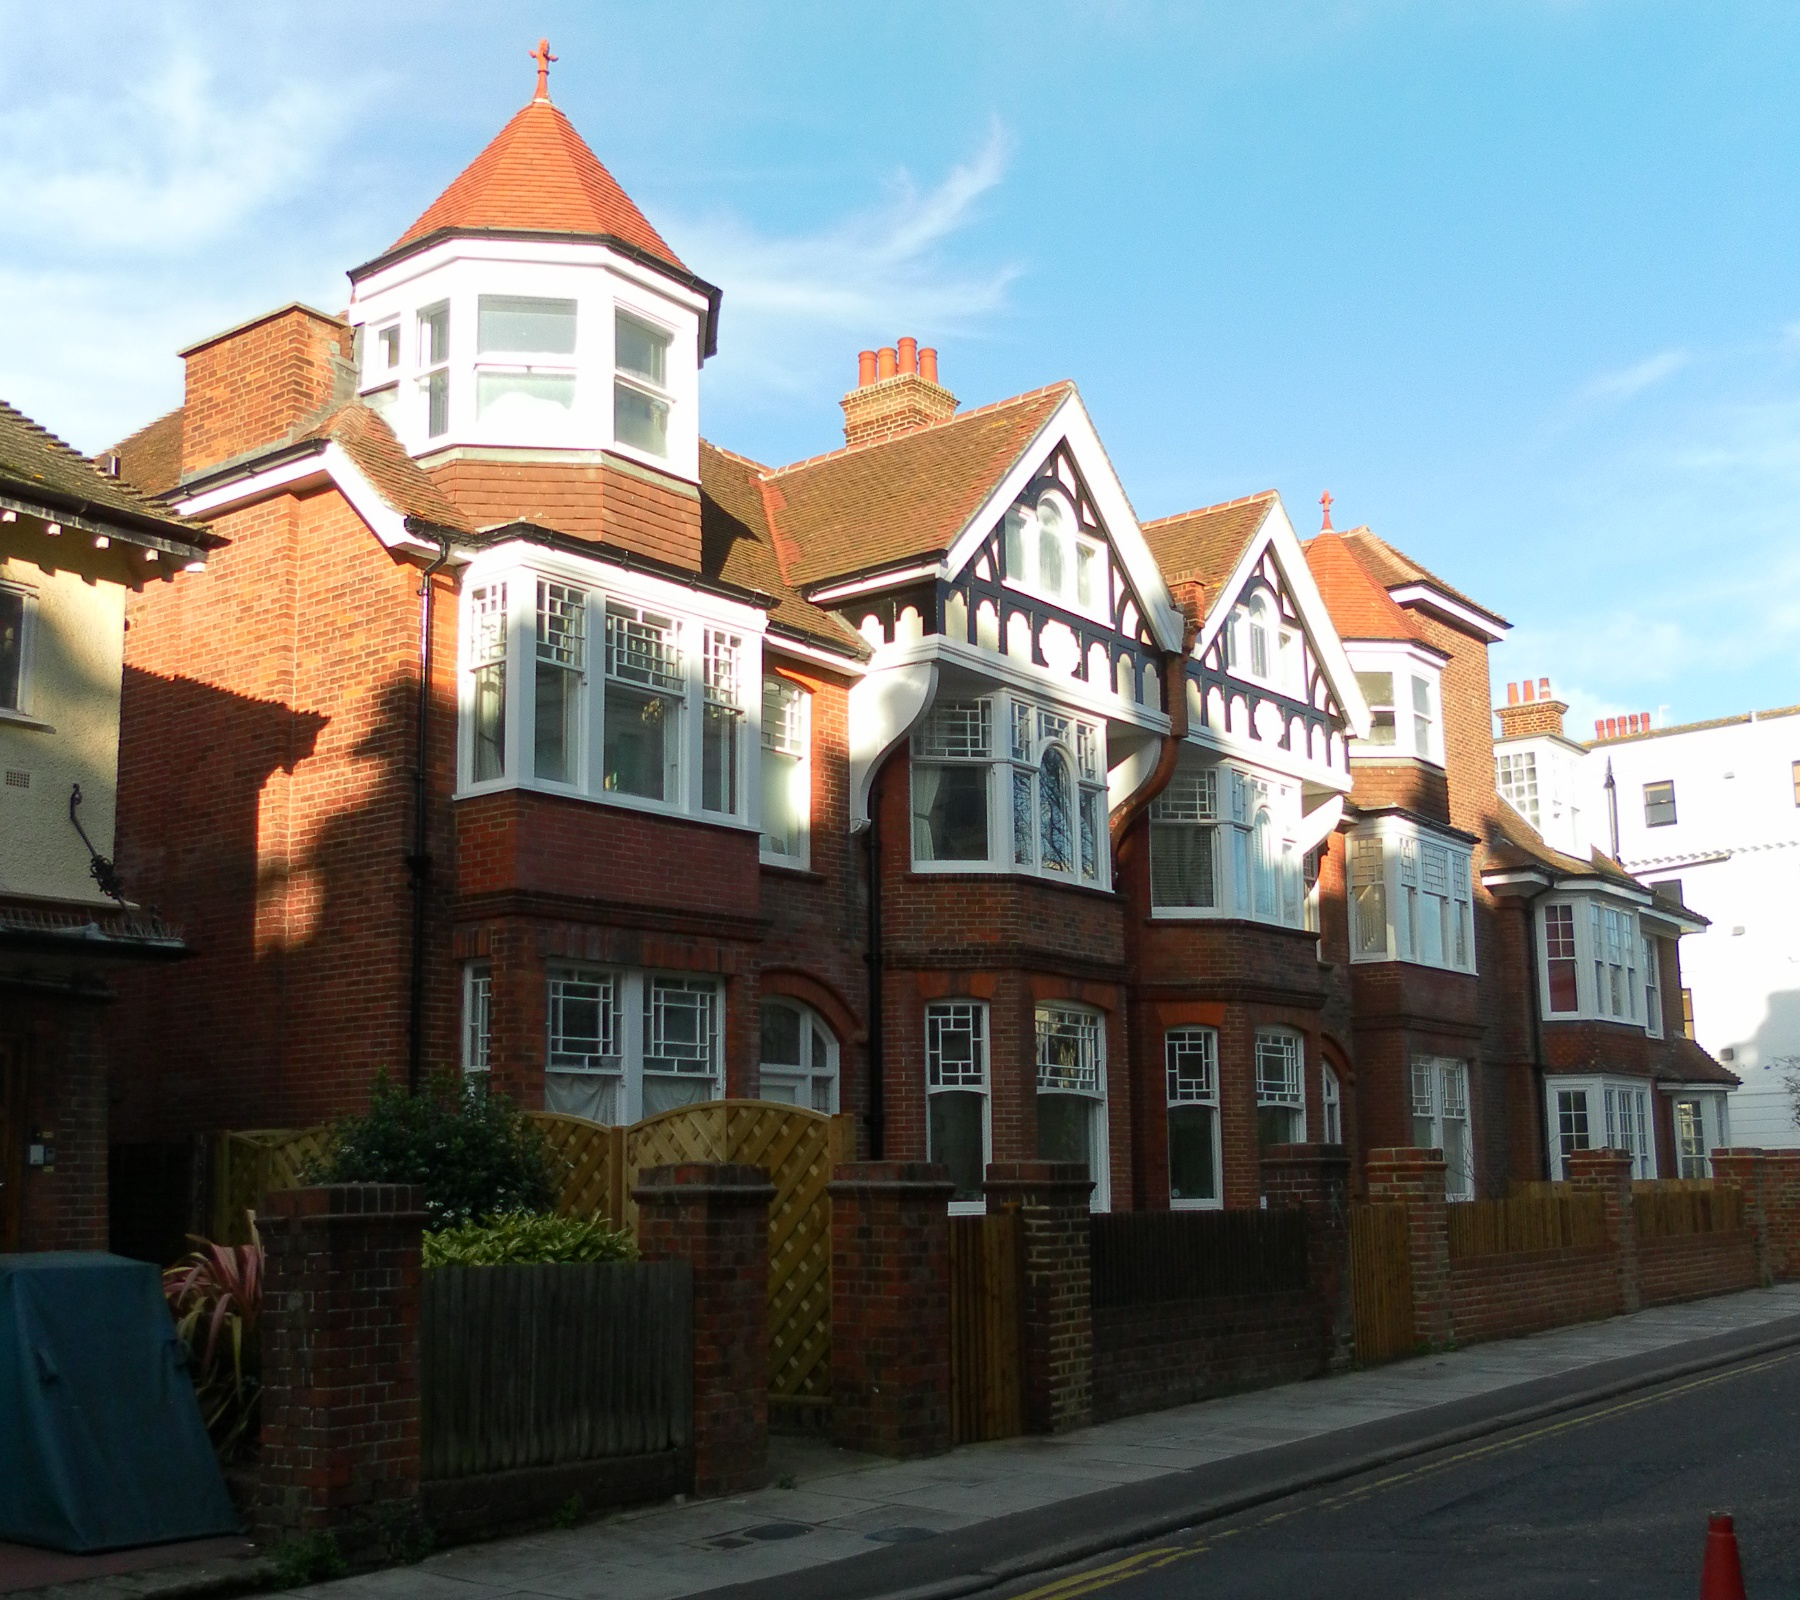 File:Edwardian Houses on Denmark Terrace, Brighton.JPG